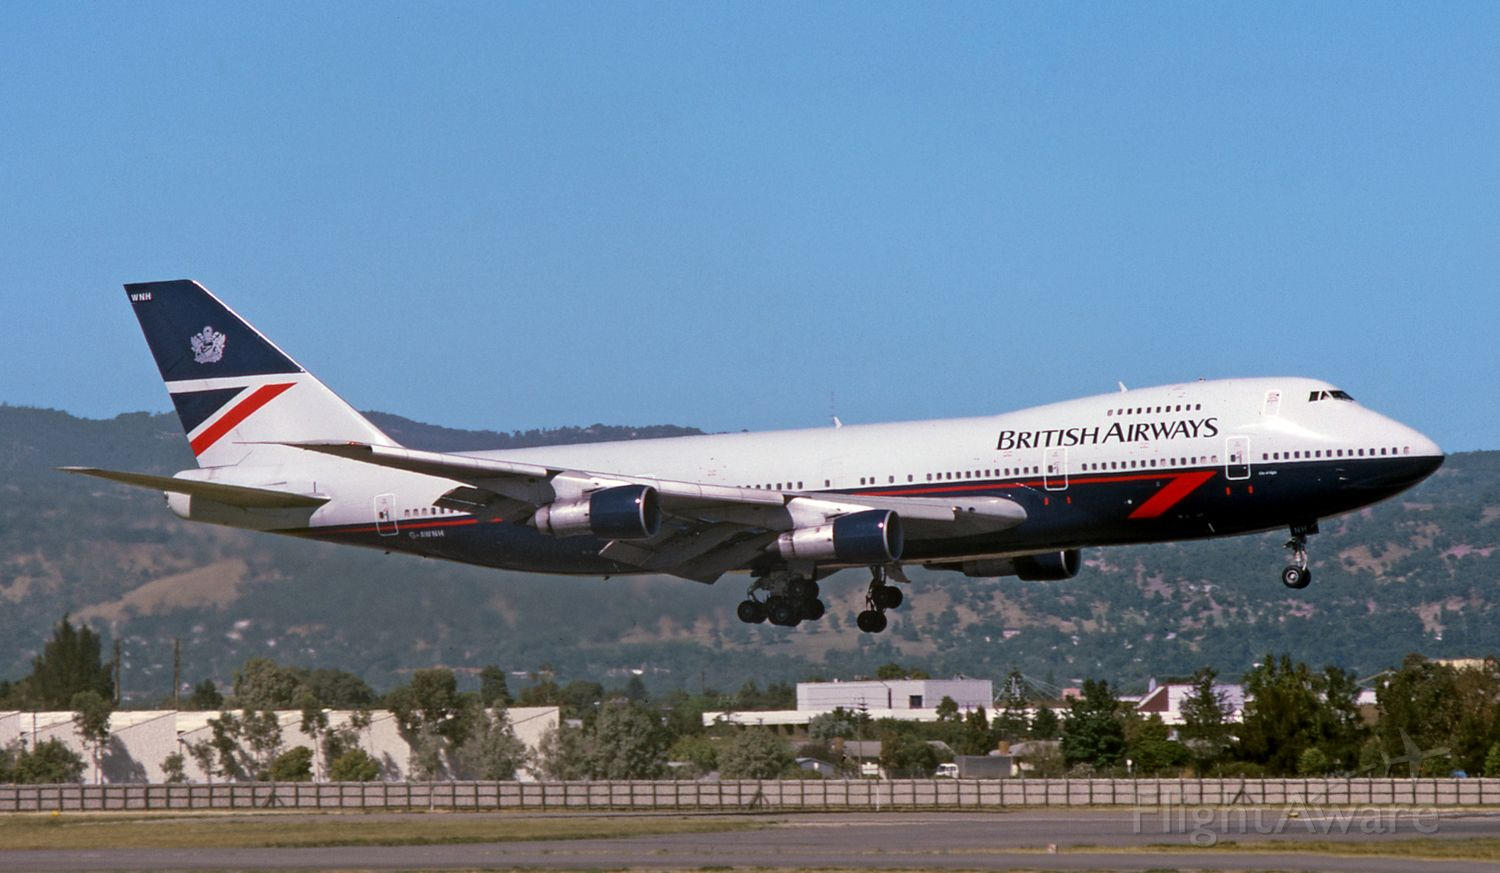 BOEING 747-100 (G-AWNH) - Adelaide, South Australia, March 25, 1985.